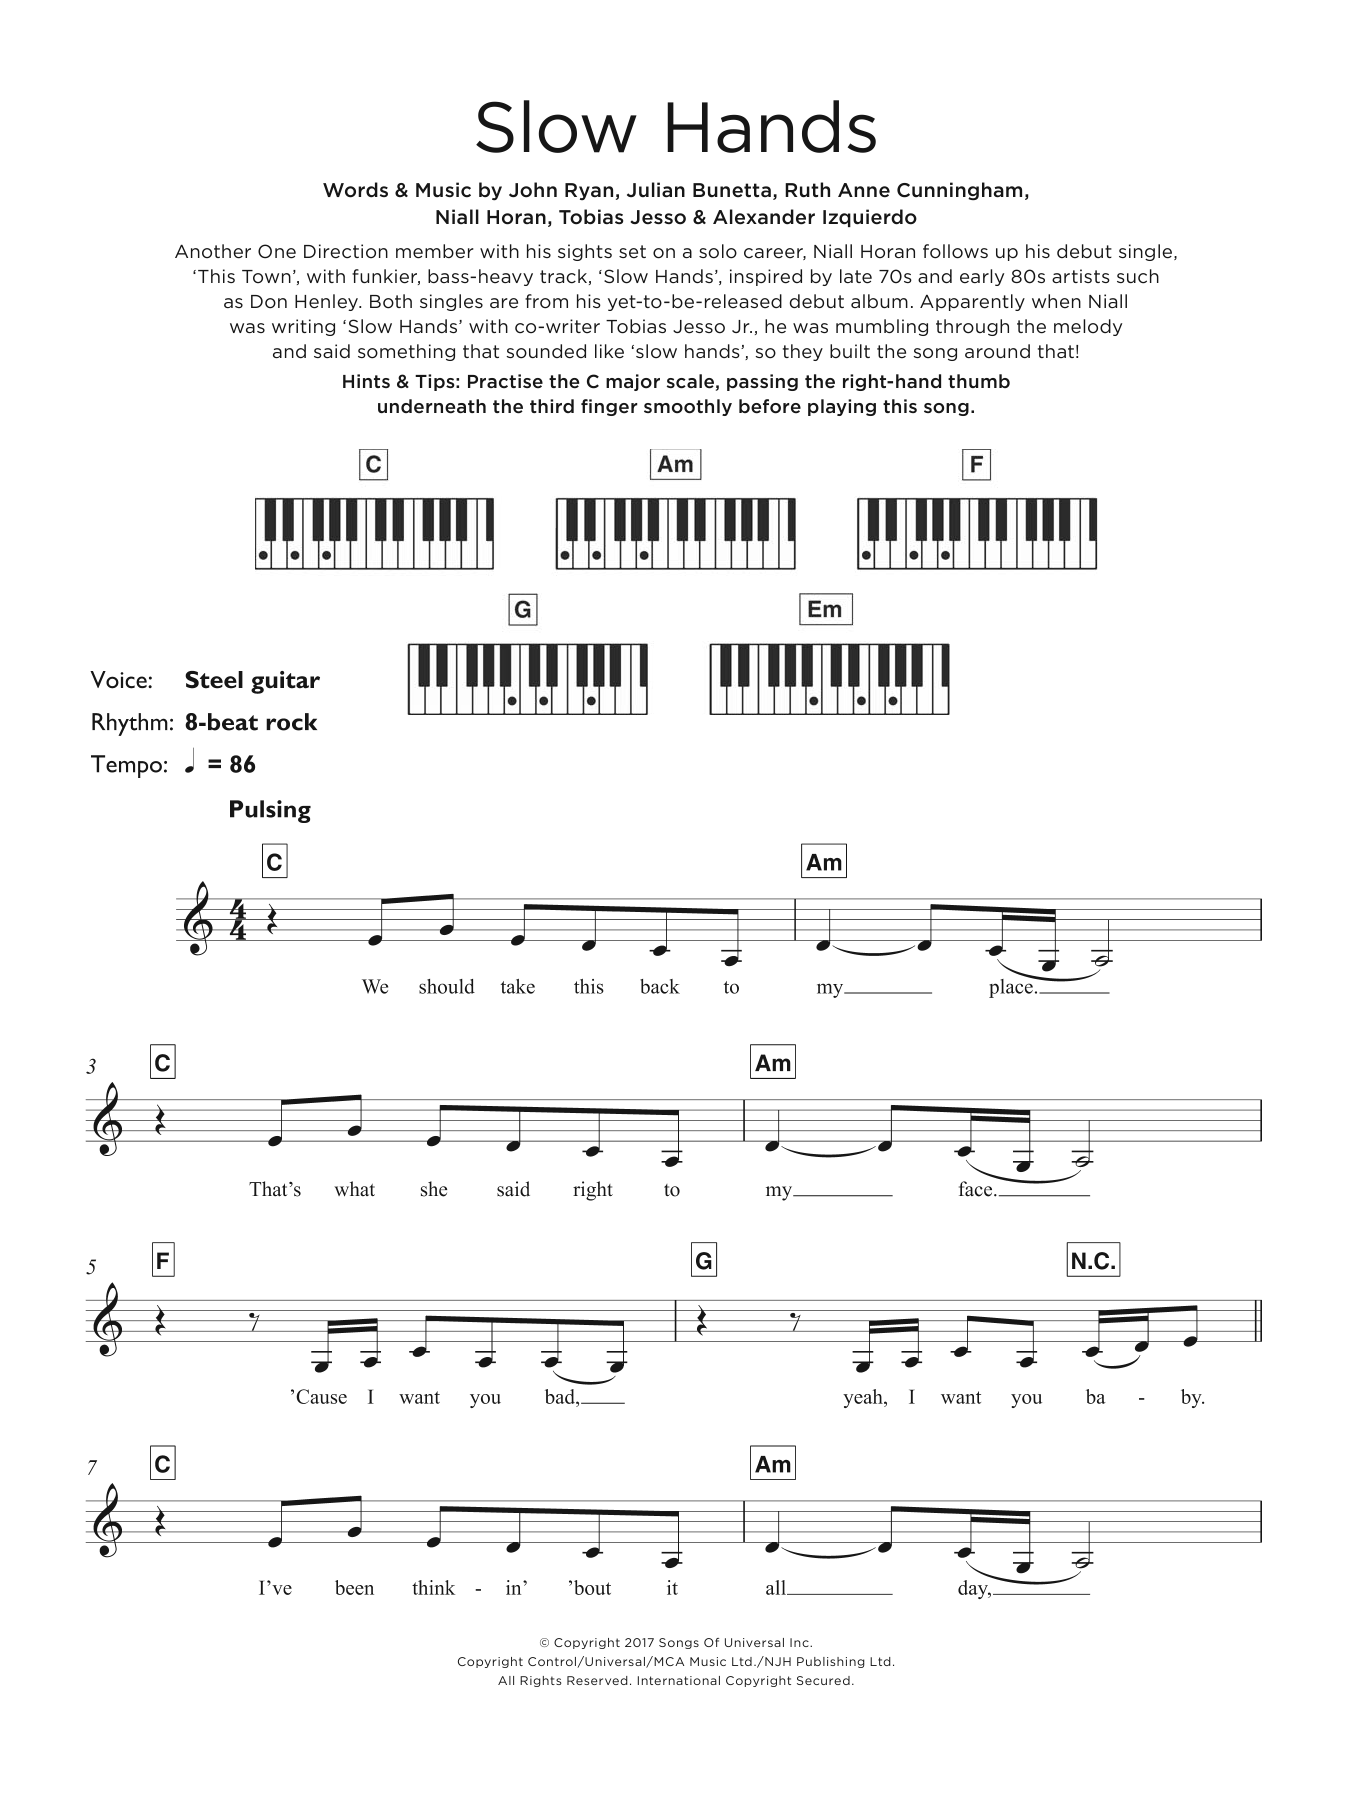 Slow Hands Sheet Music